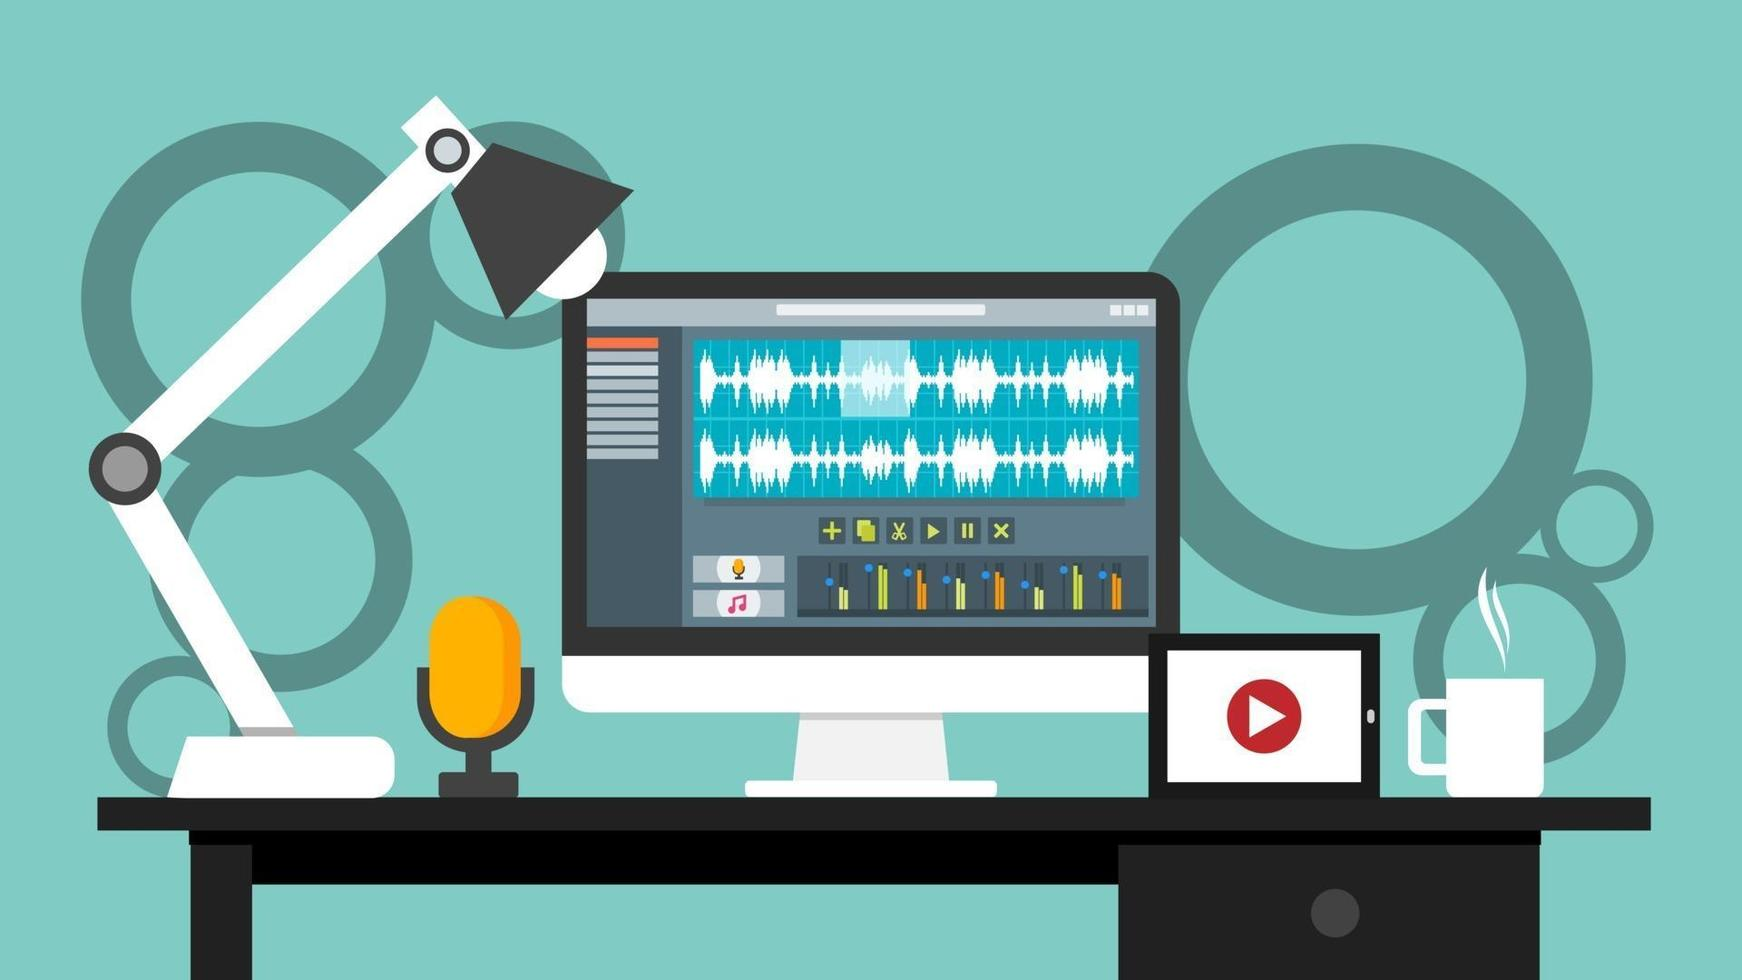 Workplace of sound and video editor interface software application on computer monitor. recording and editing process with wave digital display and buttons on screen. vector illustration.